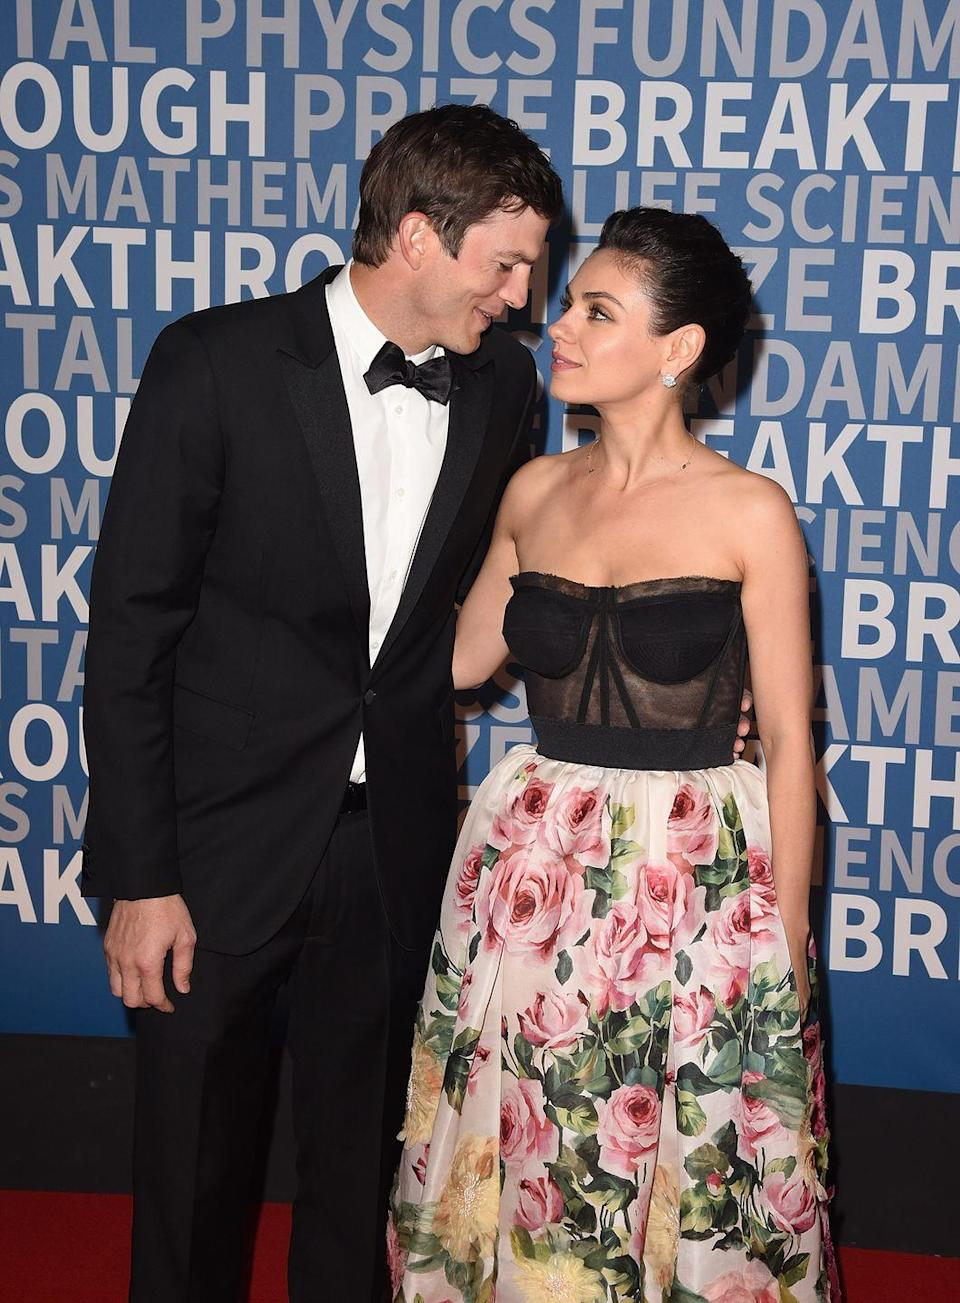 """<p>After his divorce, Kutcher reconnected with his former <em>That '70s Show</em> costar, Mila Kunis. After a few years of dating, the two married in July of 2015. """"I prize her as the most valuable person in the world to me,"""" Kutcher has said of Kunis, according to <em><a href=""""https://people.com/celebrity/ashton-kutcher-talks-about-having-sex-with-mila-kunis-their-beautiful-baby-and-brad-pitt/"""" rel=""""nofollow noopener"""" target=""""_blank"""" data-ylk=""""slk:People"""" class=""""link rapid-noclick-resp"""">People</a></em>.</p>"""